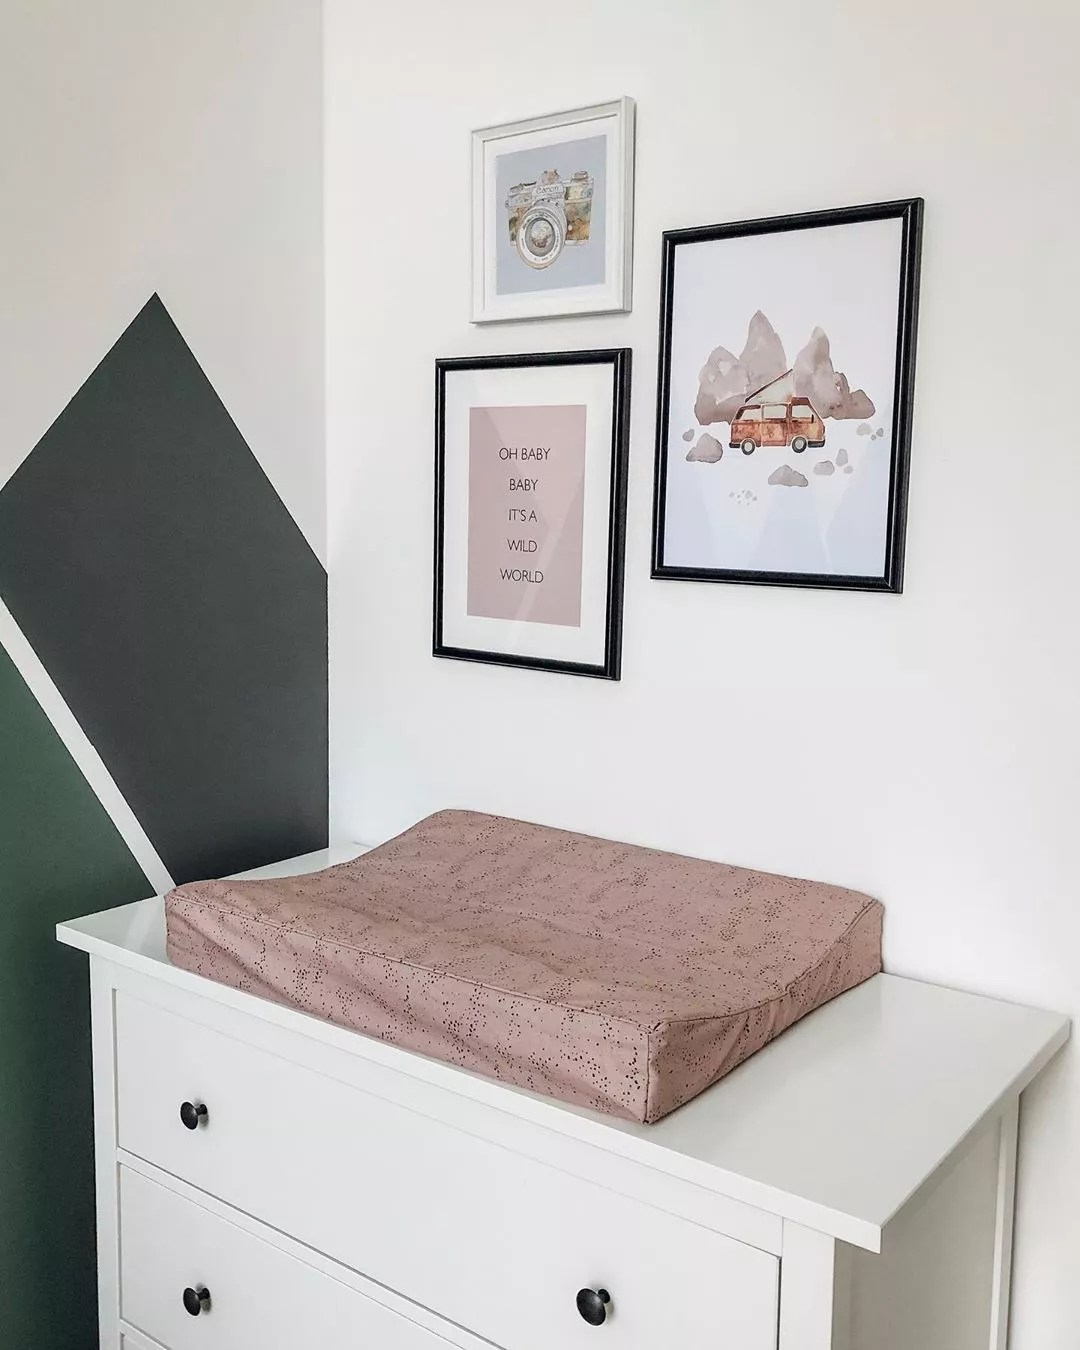 Changing table on dresser. Photo by Instagram user @so.lebt.sarah